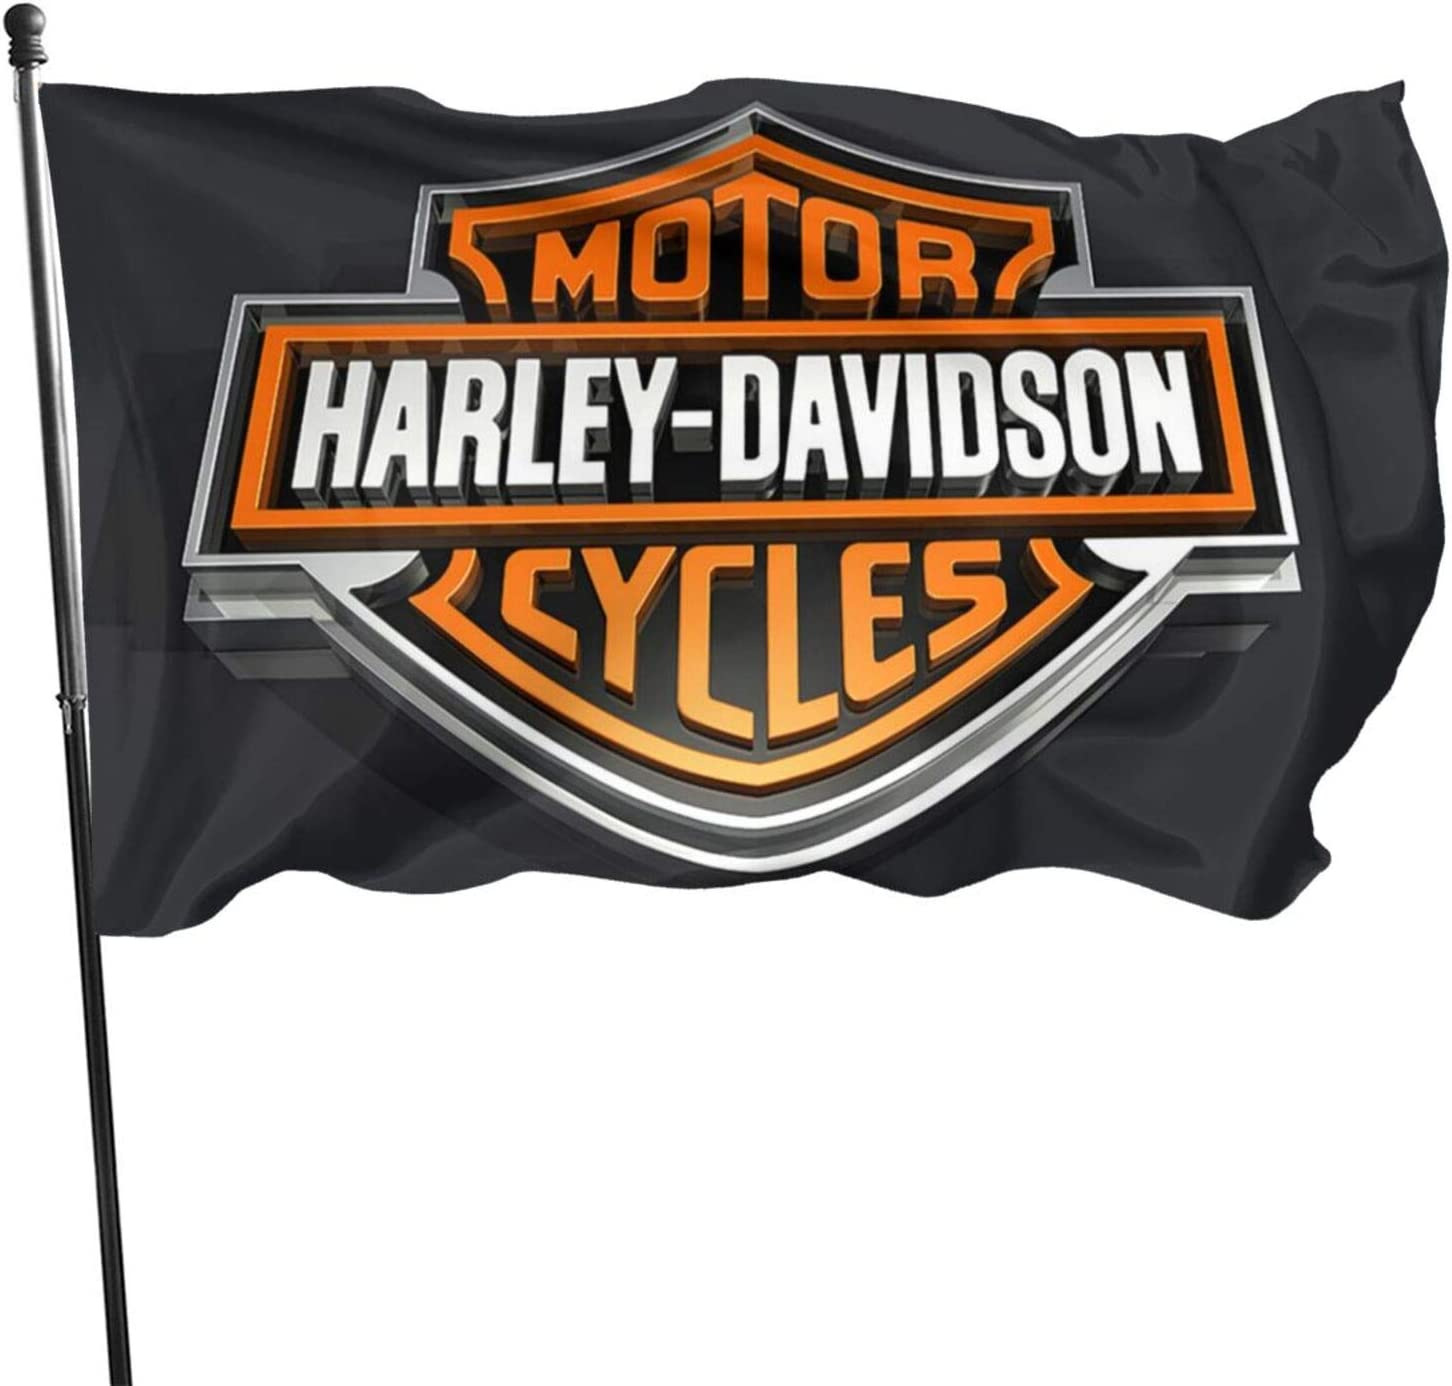 TANBAK Harley Davidson Outdoor Flags Printed 3x5 Ft Vivid Color Banner with Brass Grommets Party Decorative Flag for Home Garden Welcome,4